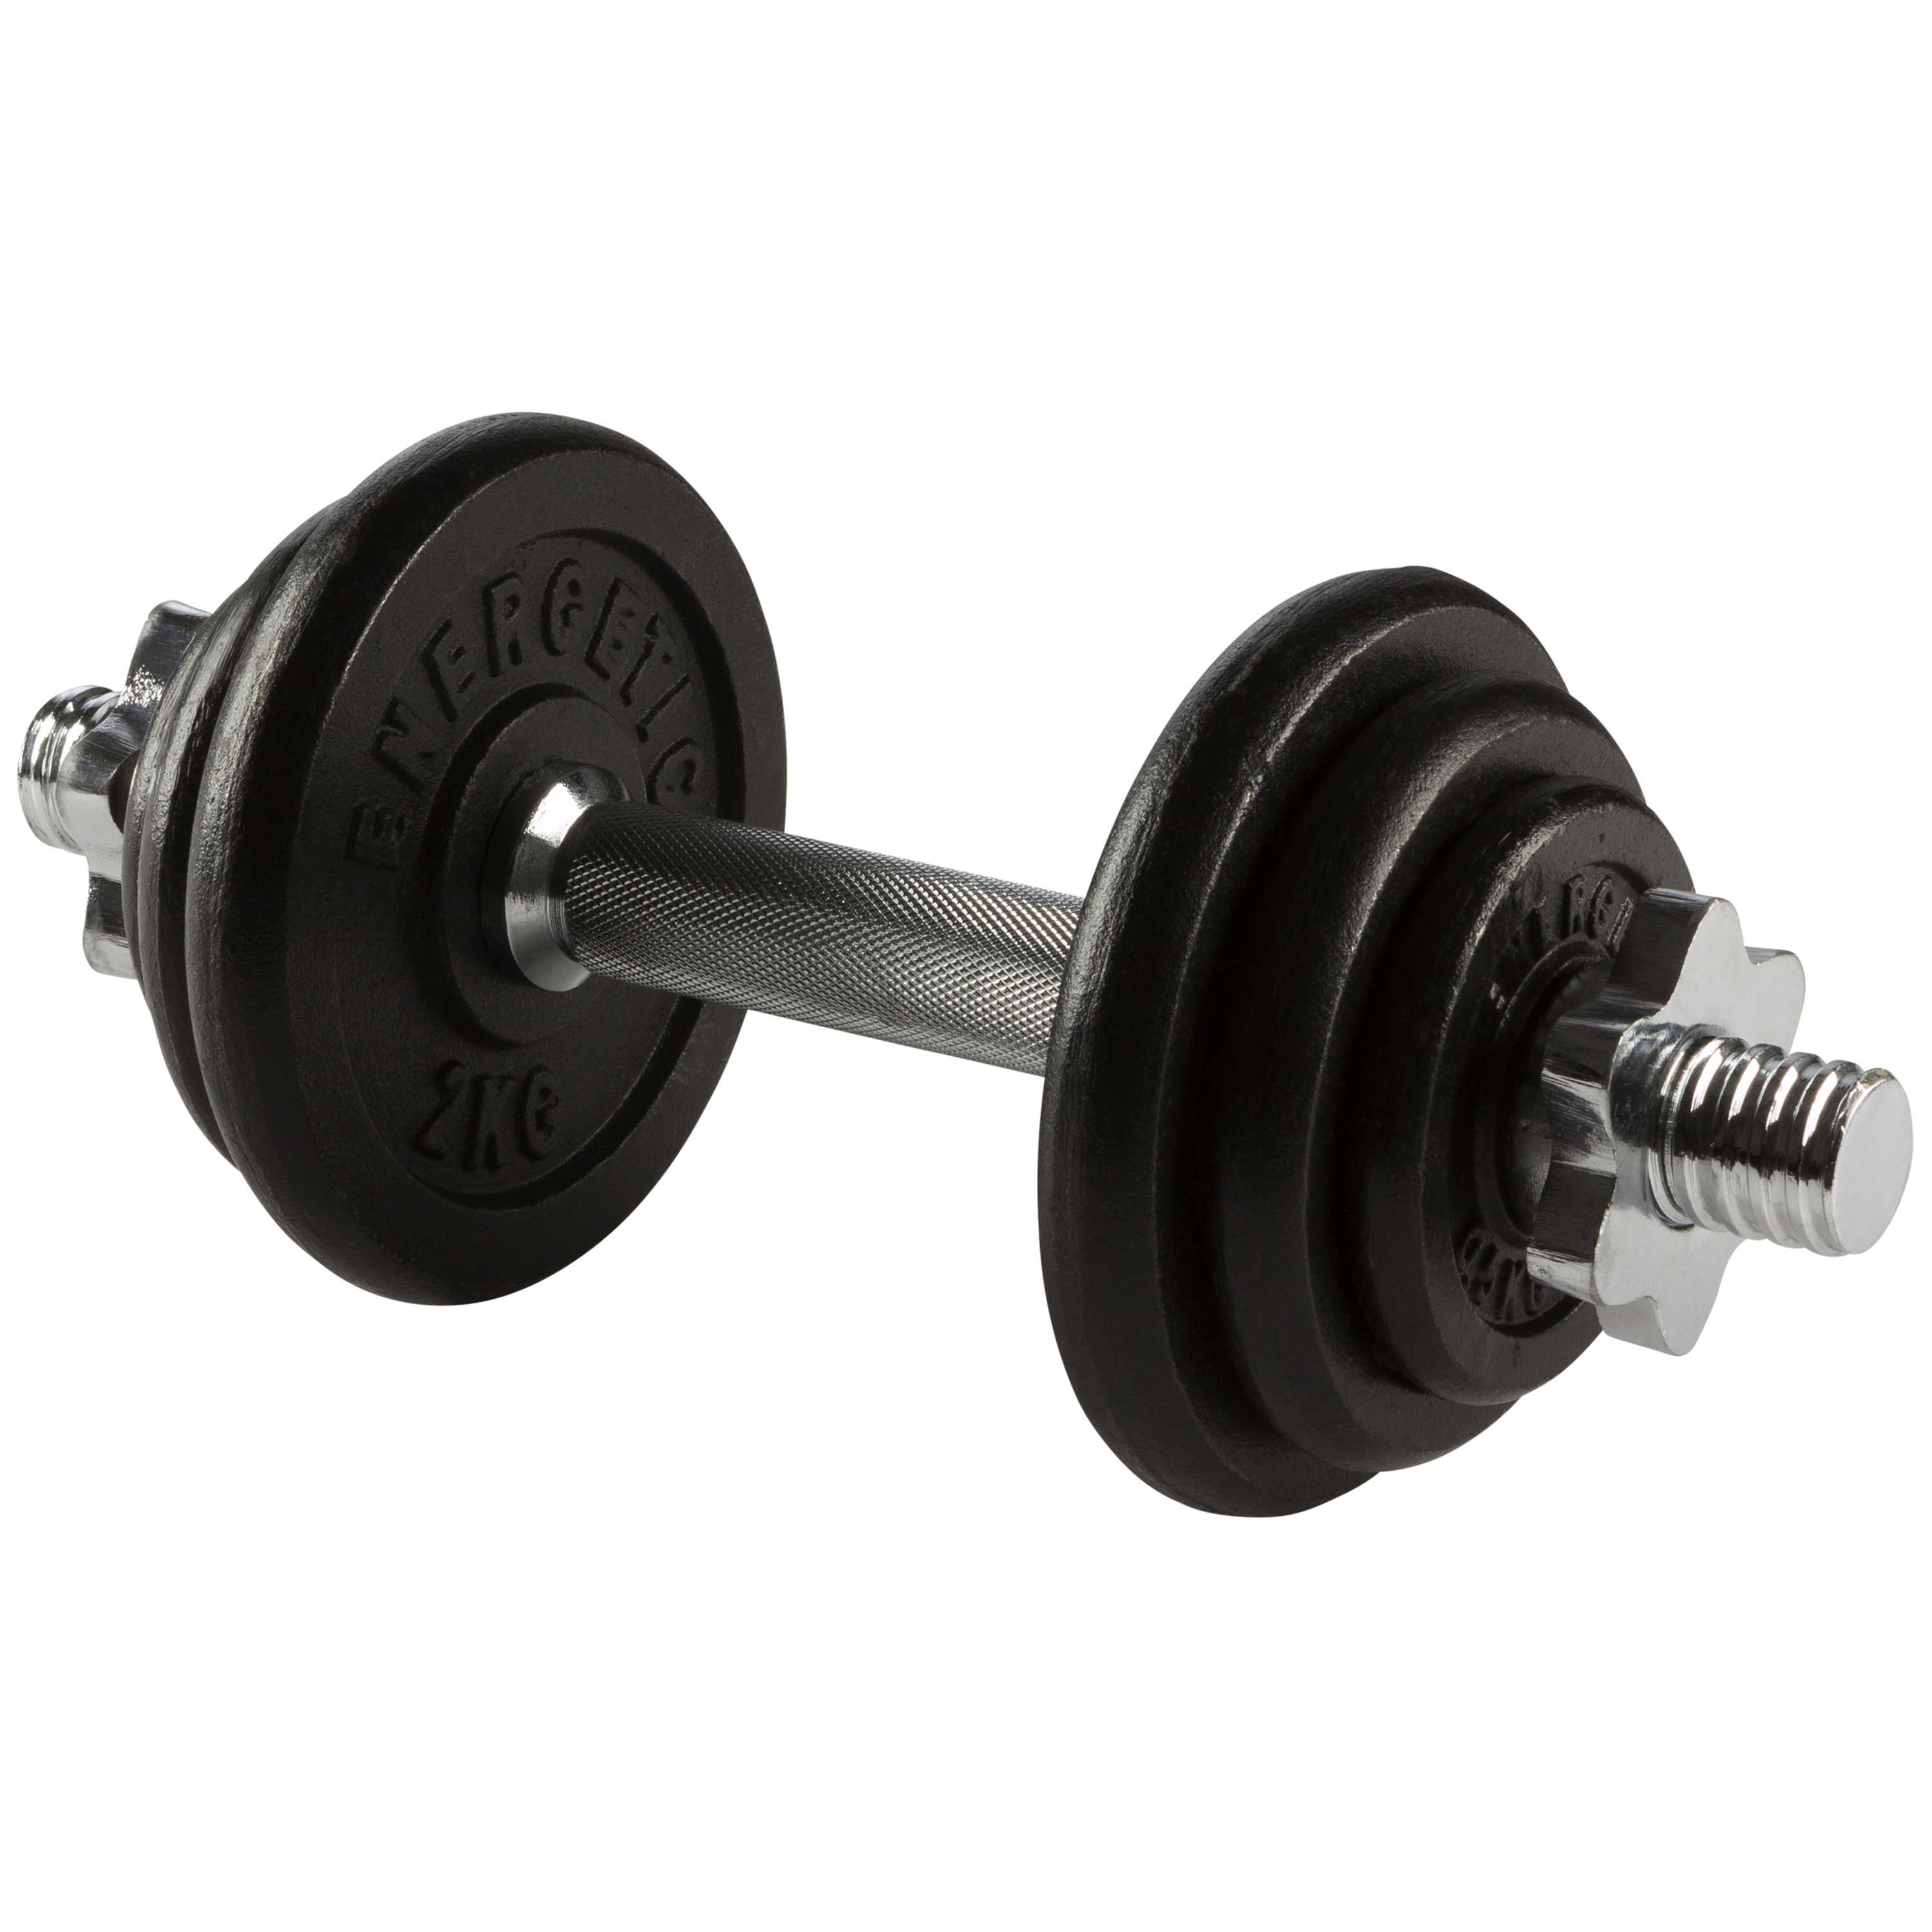 Hantel png . Dumbbell clipart transparent background